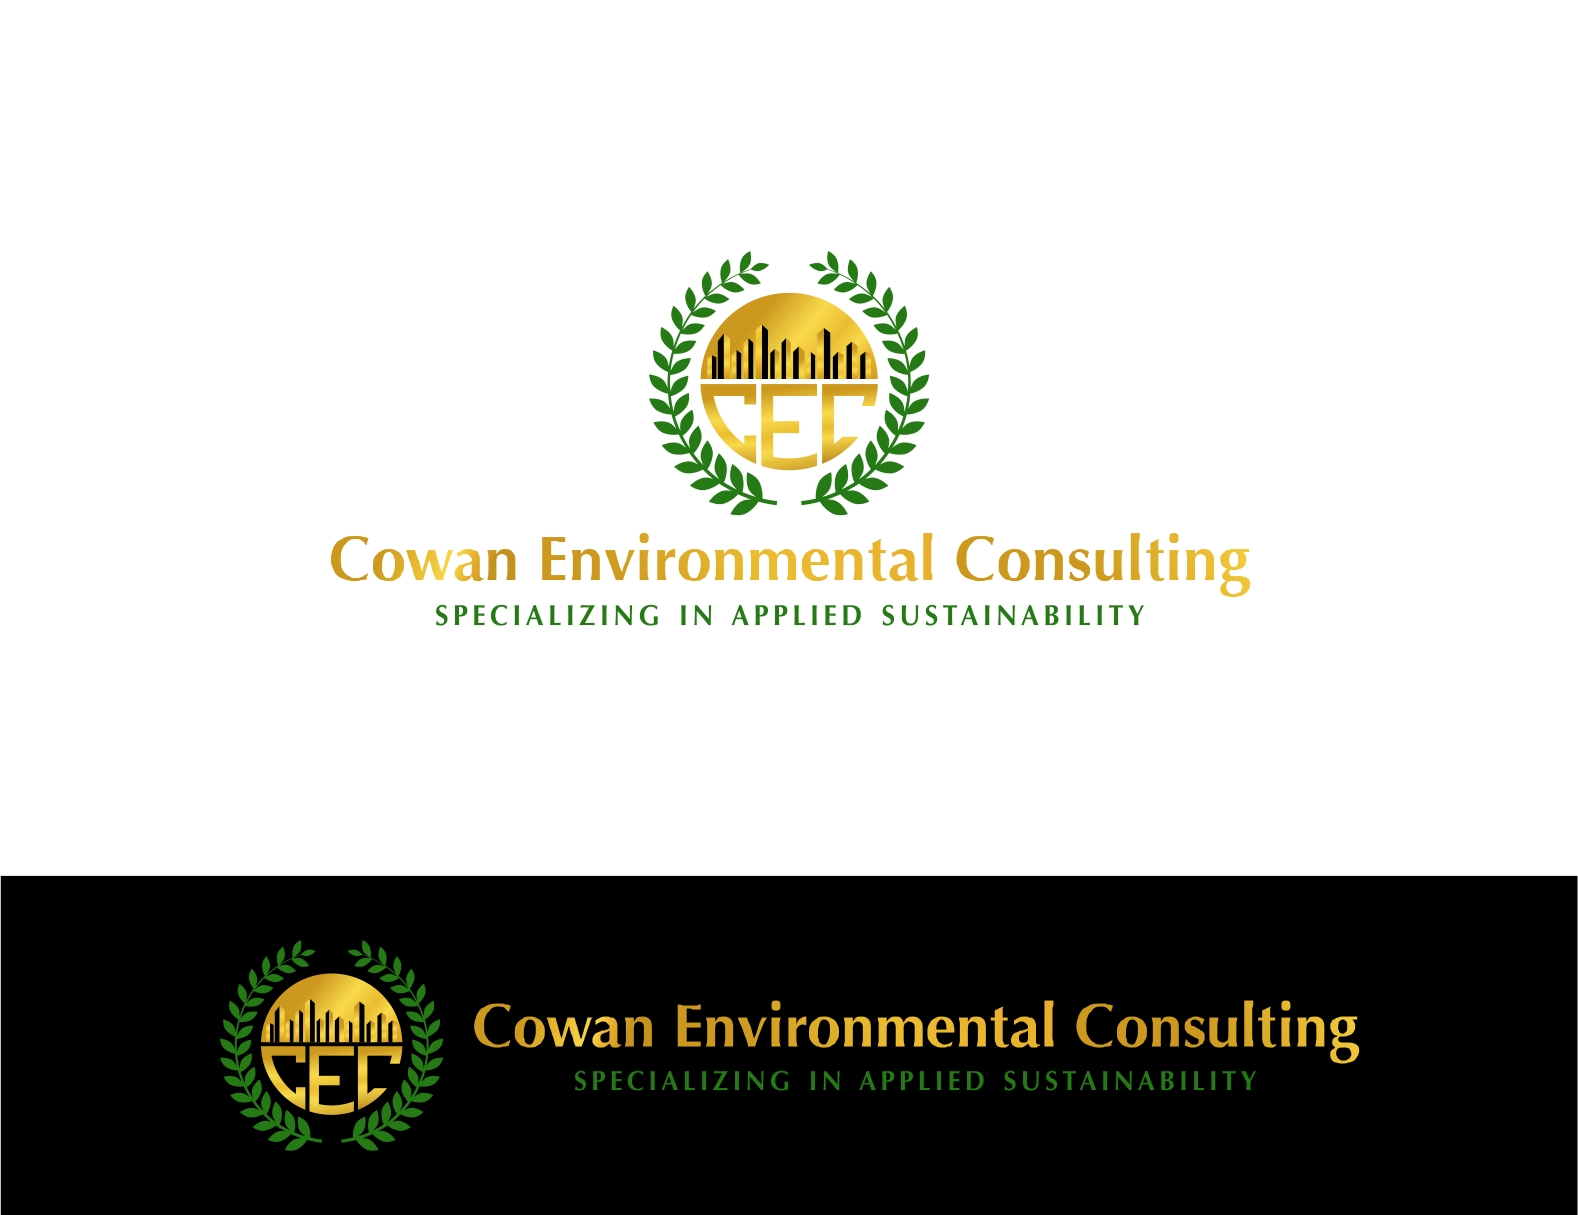 Logo Design by haidu - Entry No. 44 in the Logo Design Contest Fun Logo Design for Cowan Environmental Consulting.